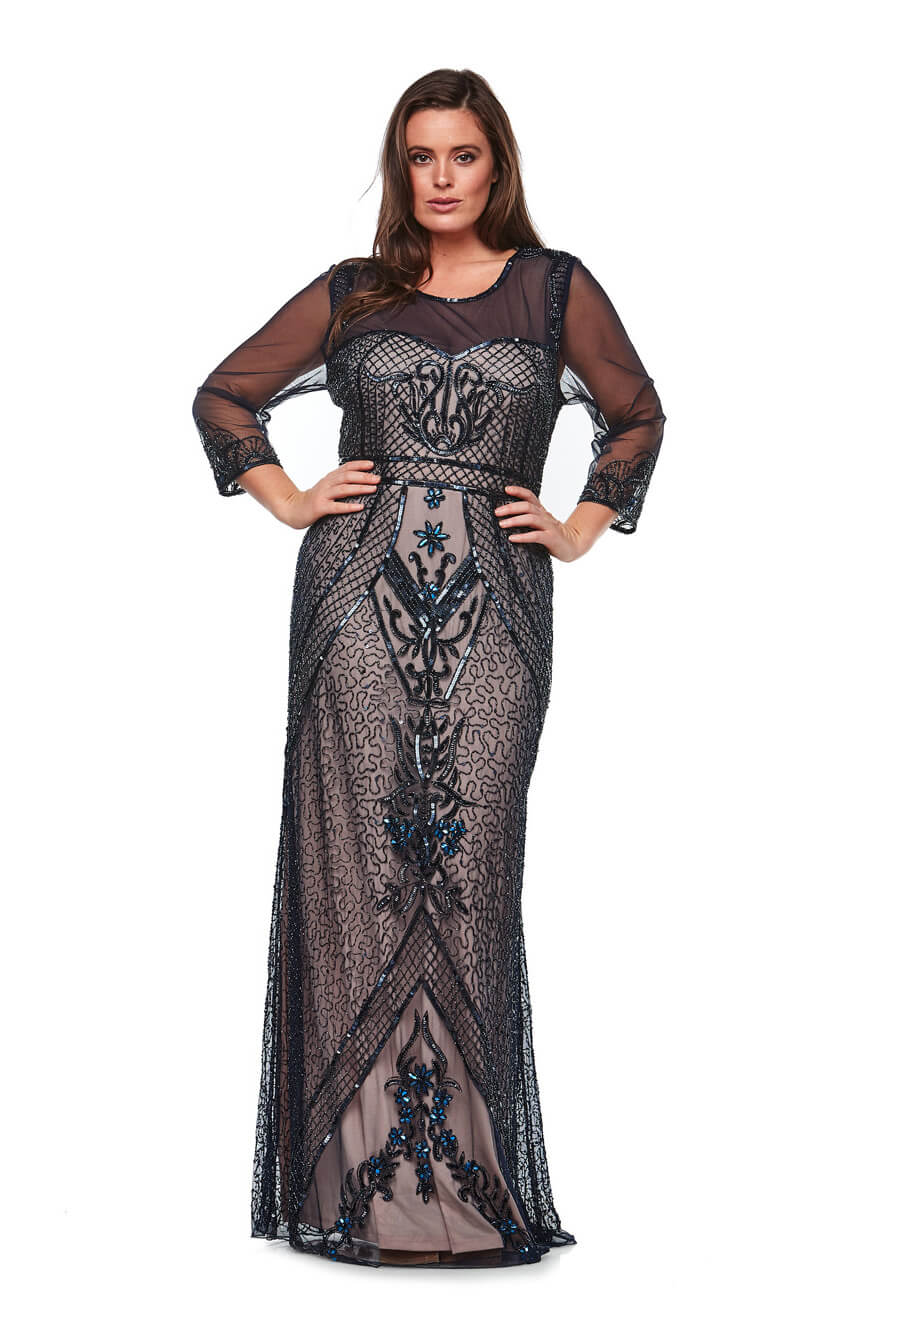 Long beaded dress with sweetheart neckline and sheer 3/4 sleeves